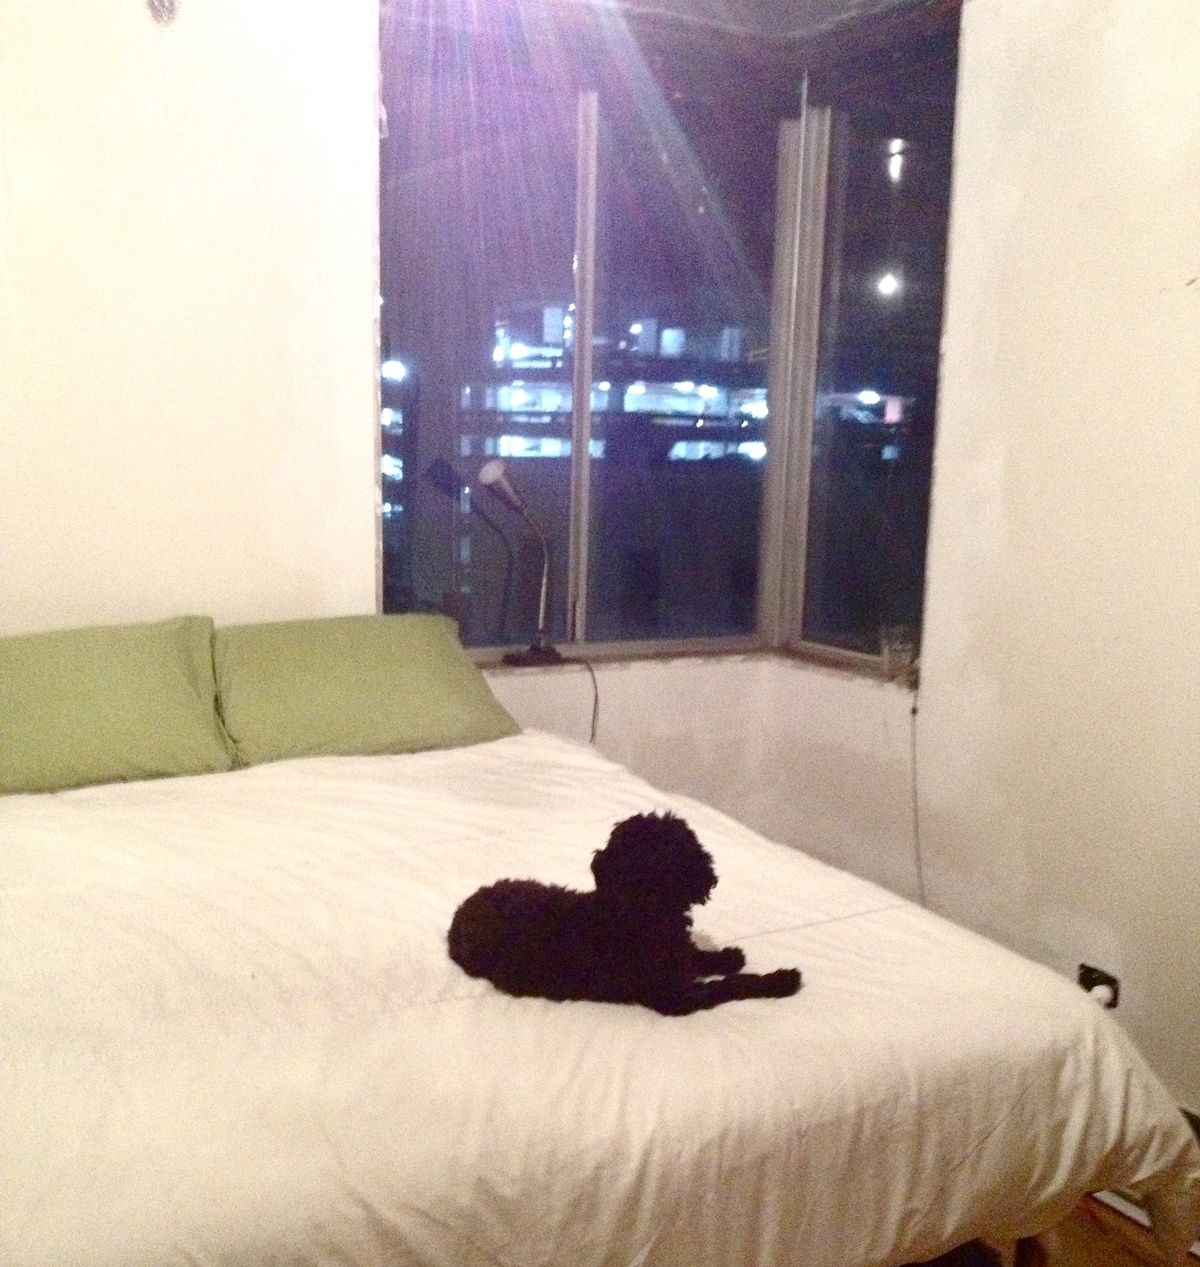 Our puppy Charlie likes the evening view :)